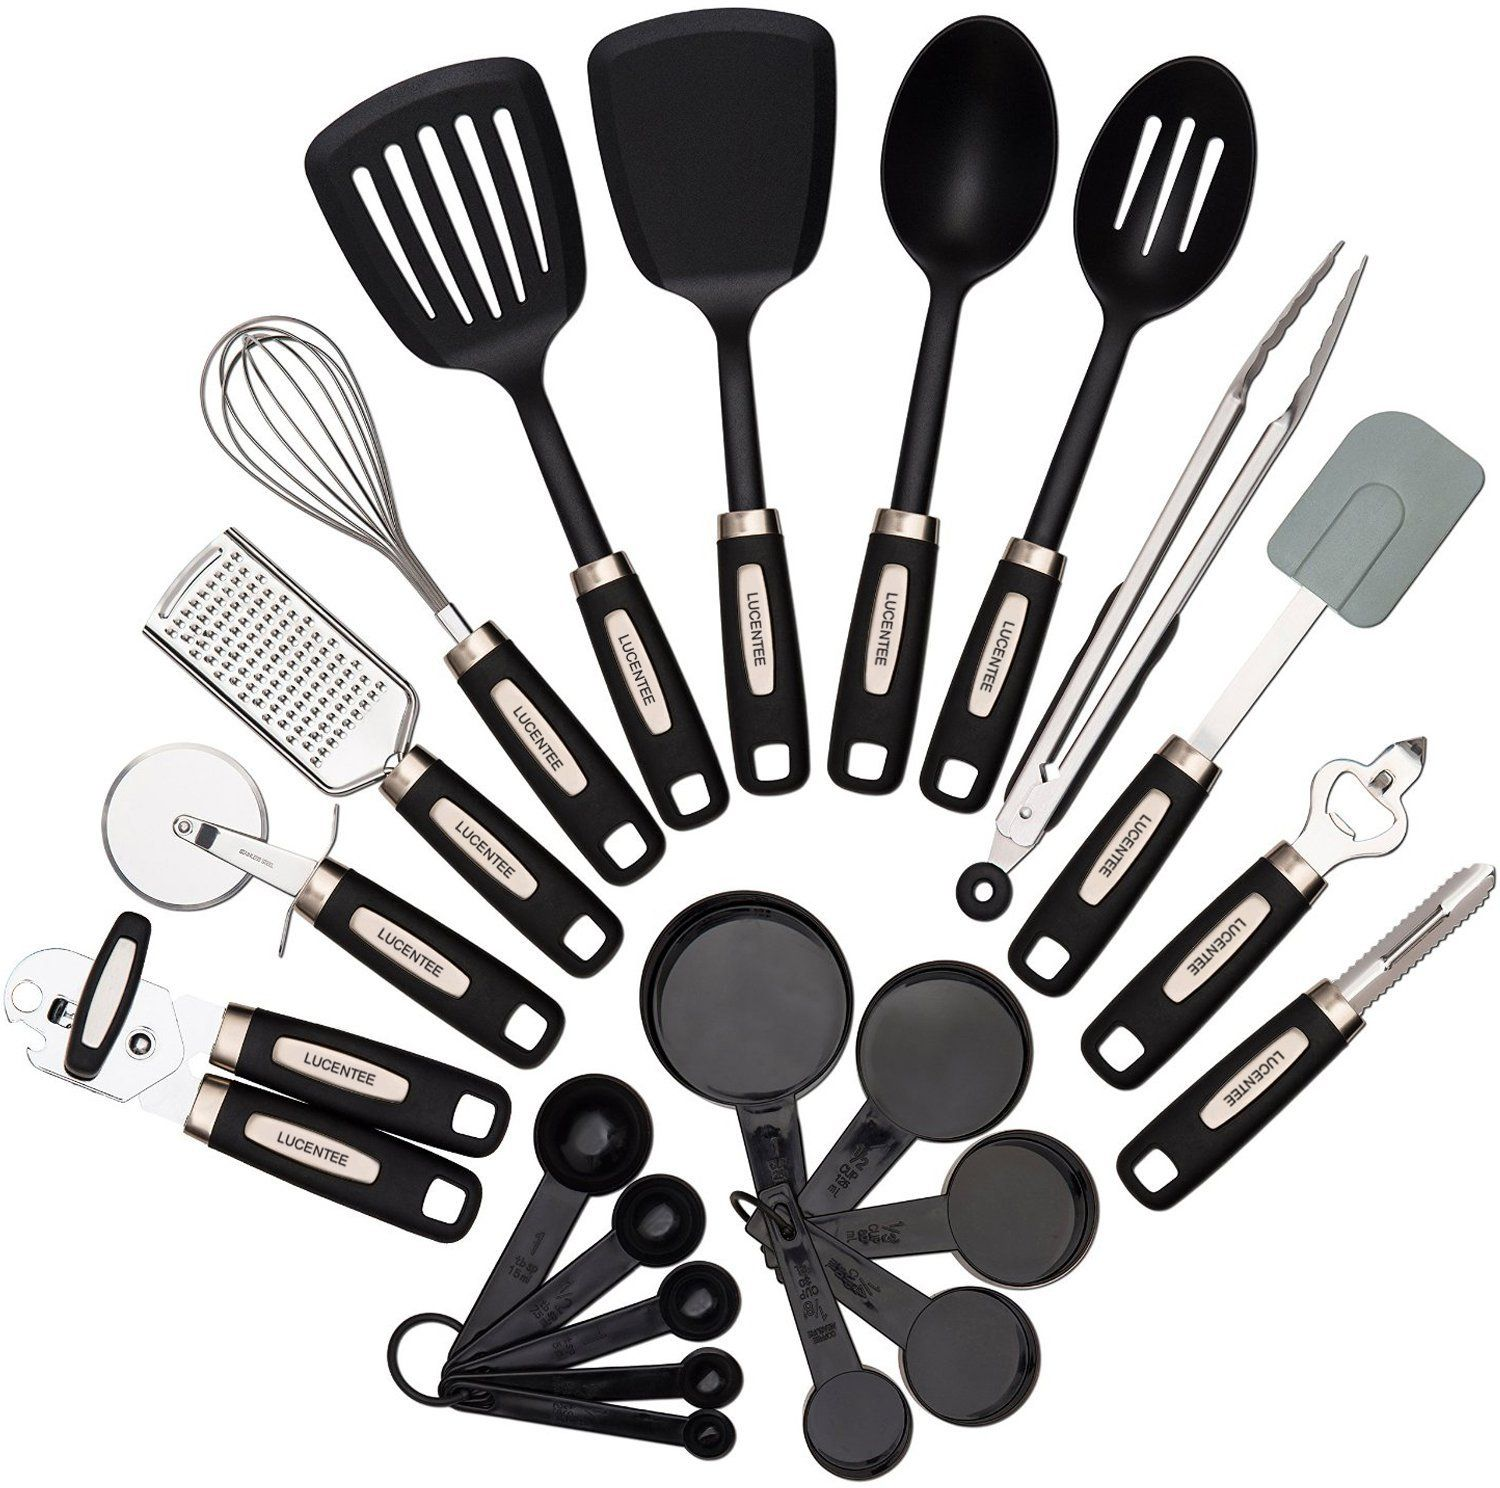 Amazon.com: 22-piece Kitchen Utensils Sets - Home Cooking Tools ...